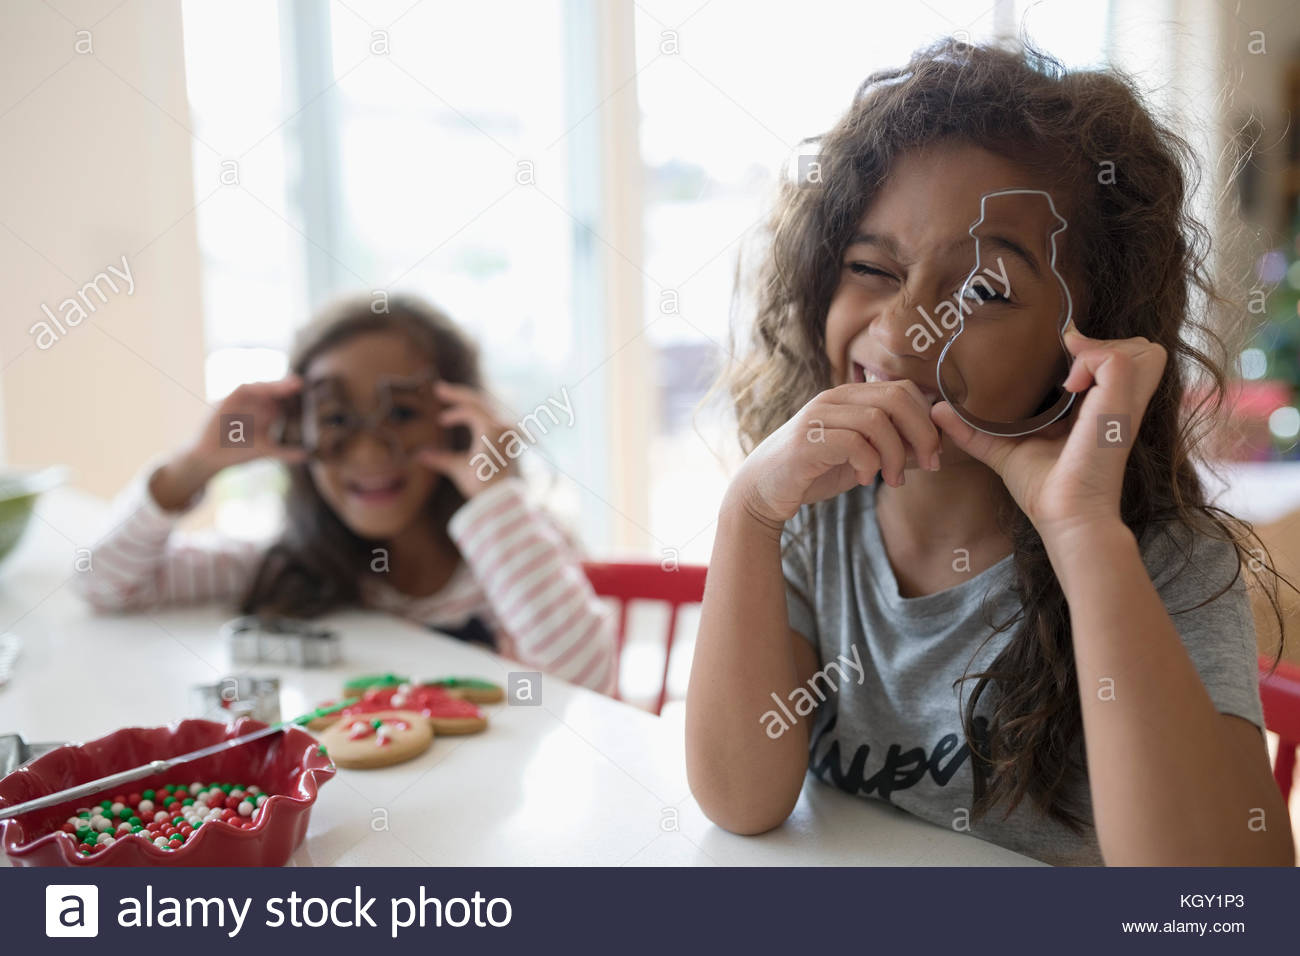 Portrait playful girl sisters with Christmas cookie cutters baking in kitchen - Stock Image